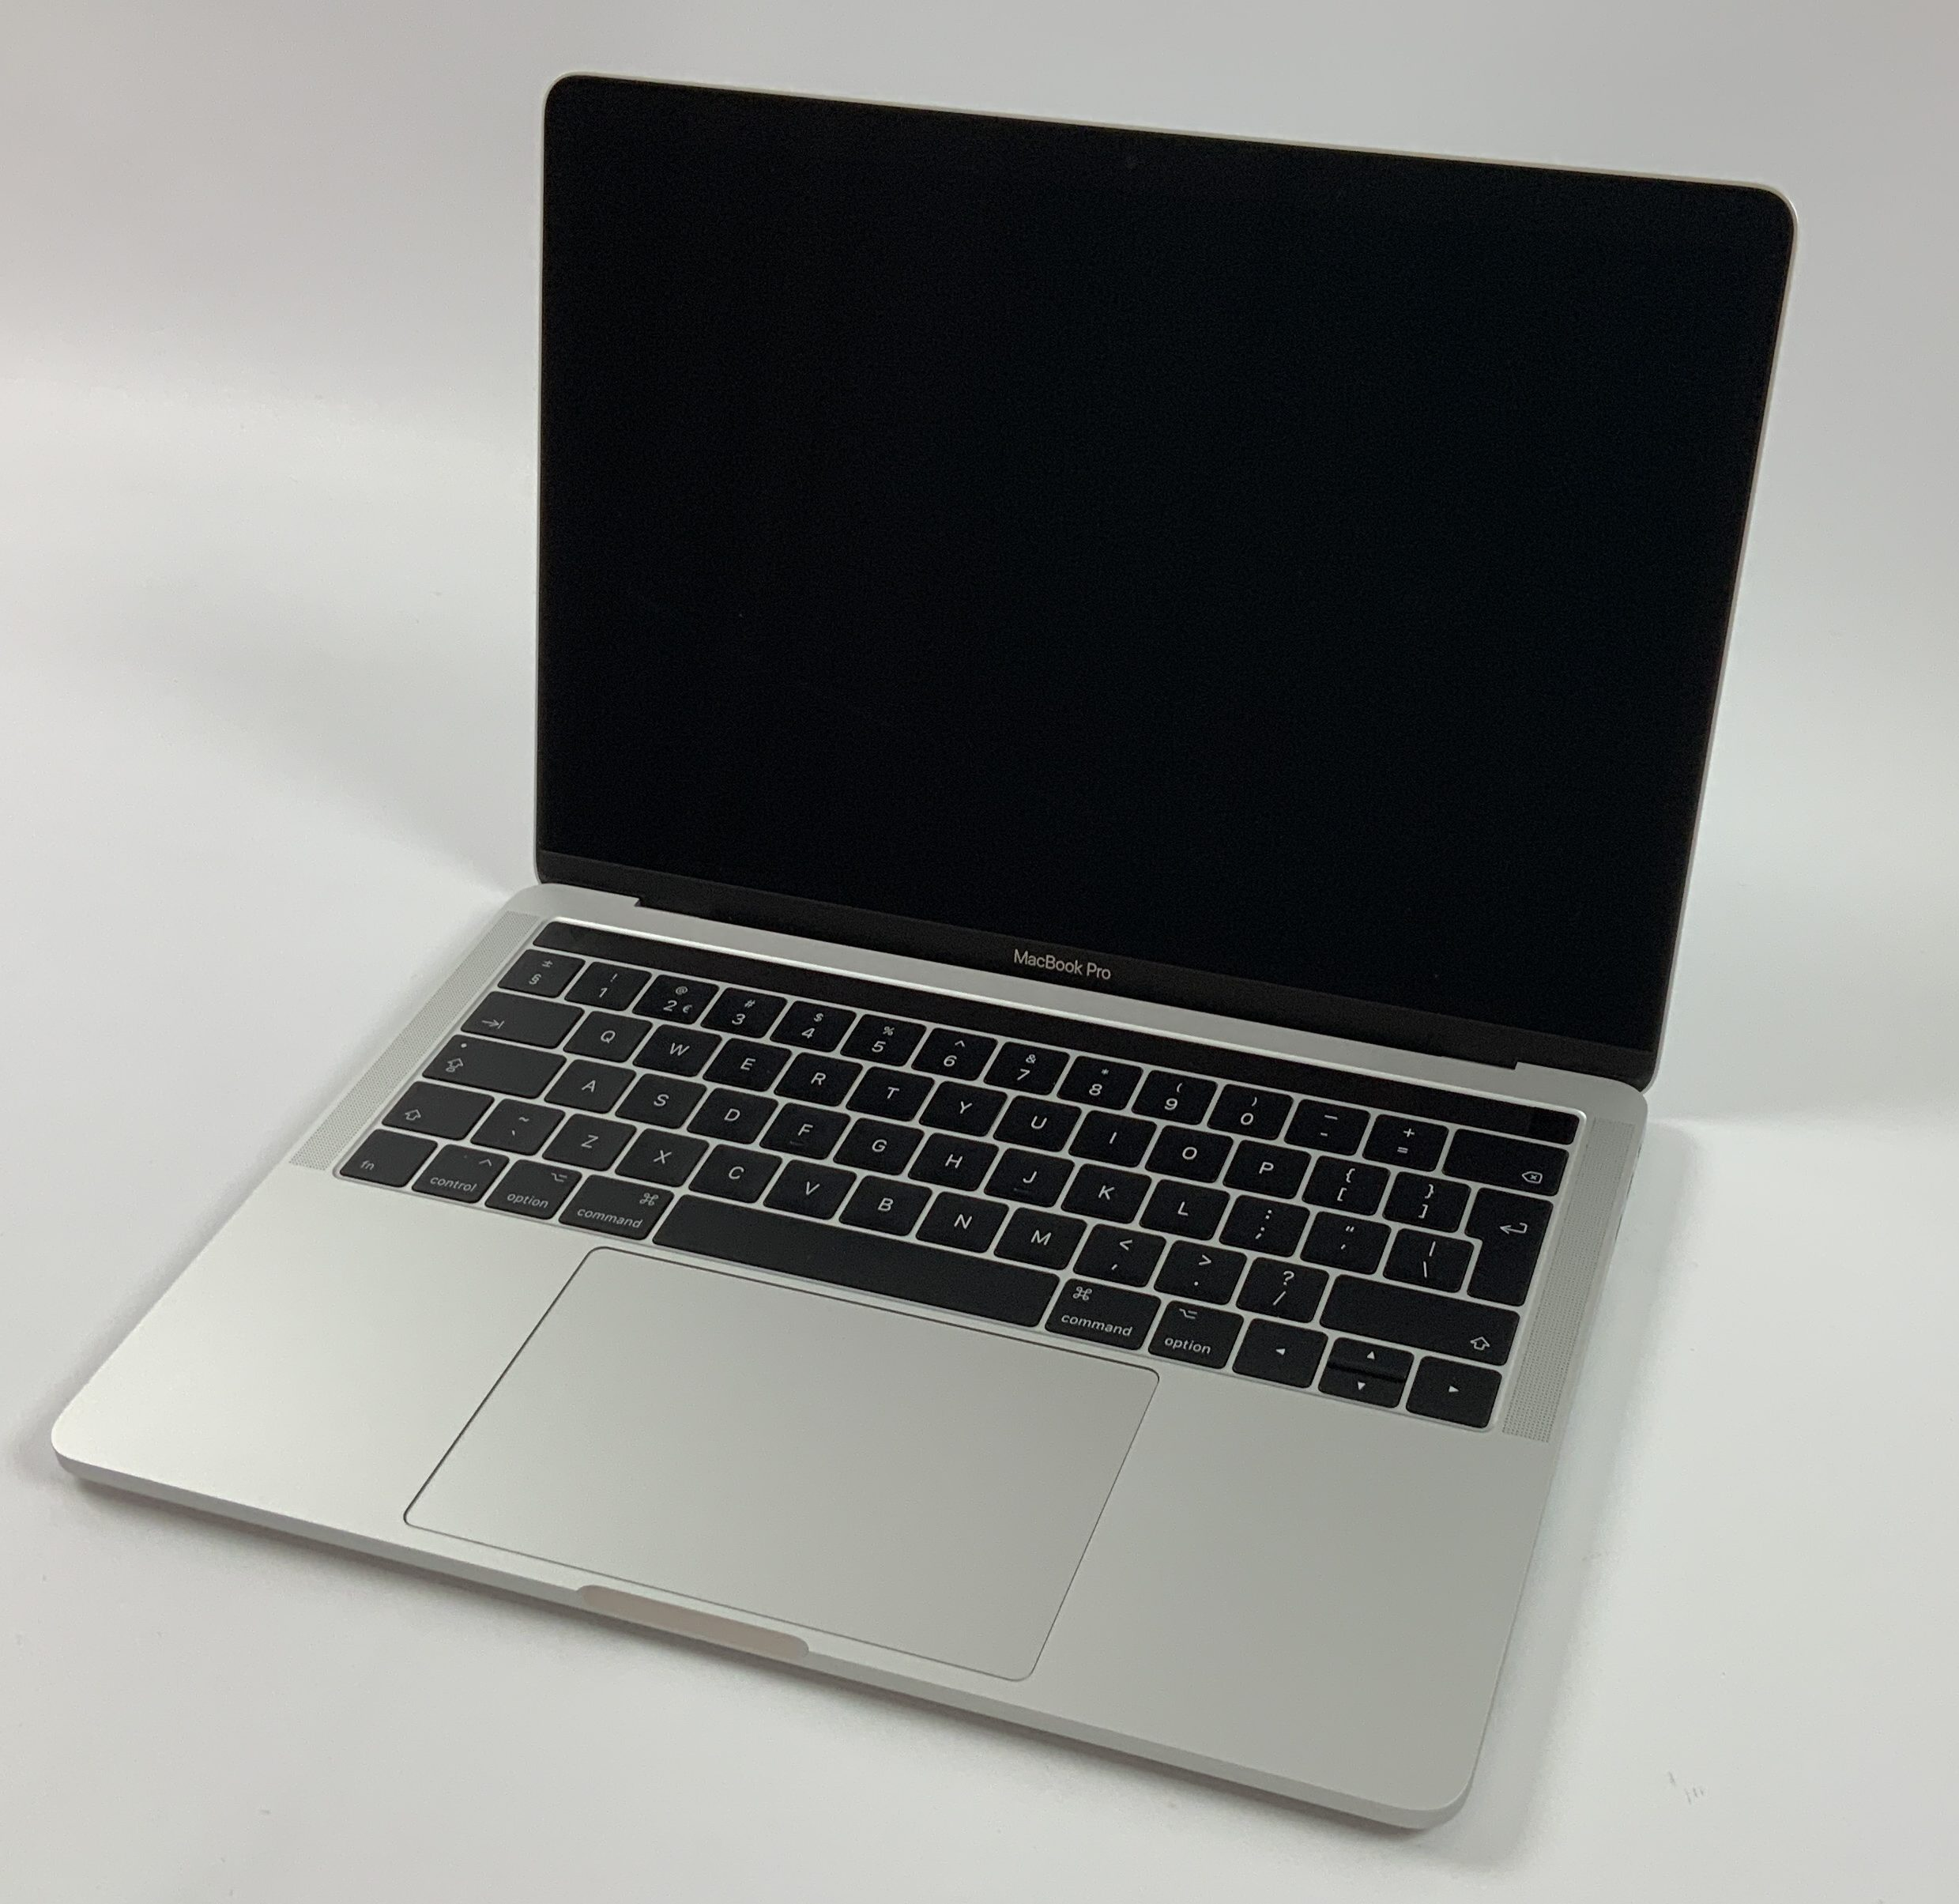 "MacBook Pro 13"" 4TBT Mid 2017 (Intel Core i5 3.1 GHz 16 GB RAM 256 GB SSD), Silver, Intel Core i5 3.1 GHz, 16 GB RAM, 256 GB SSD, Afbeelding 1"